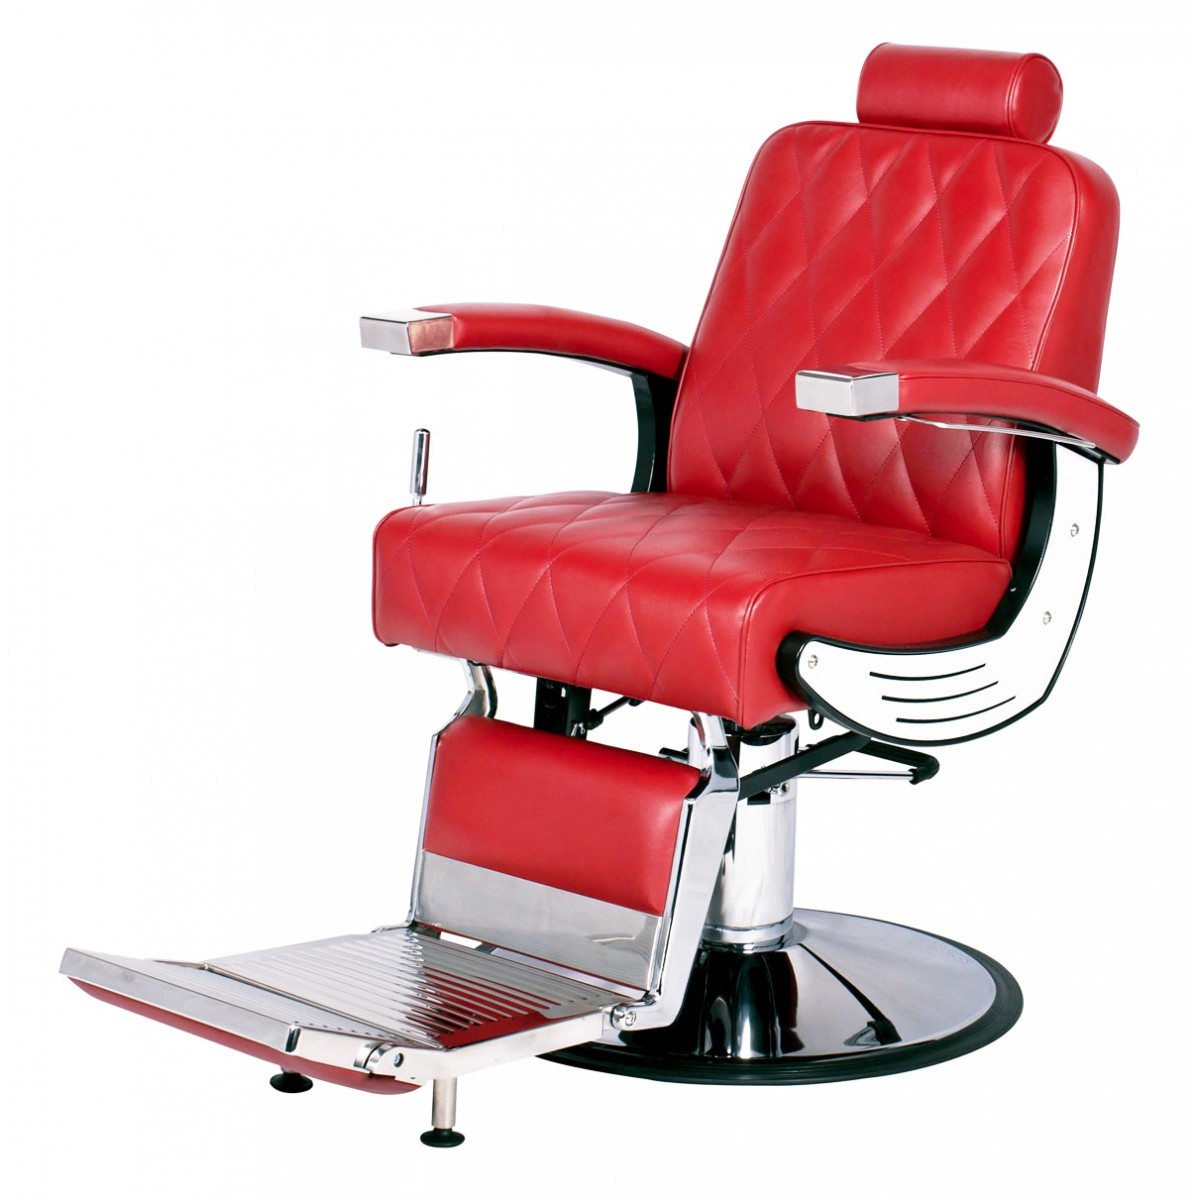 """BARON"" Vintage Barber Chair, Barber Chairs For Sale, Wholesale Barber Chairs"